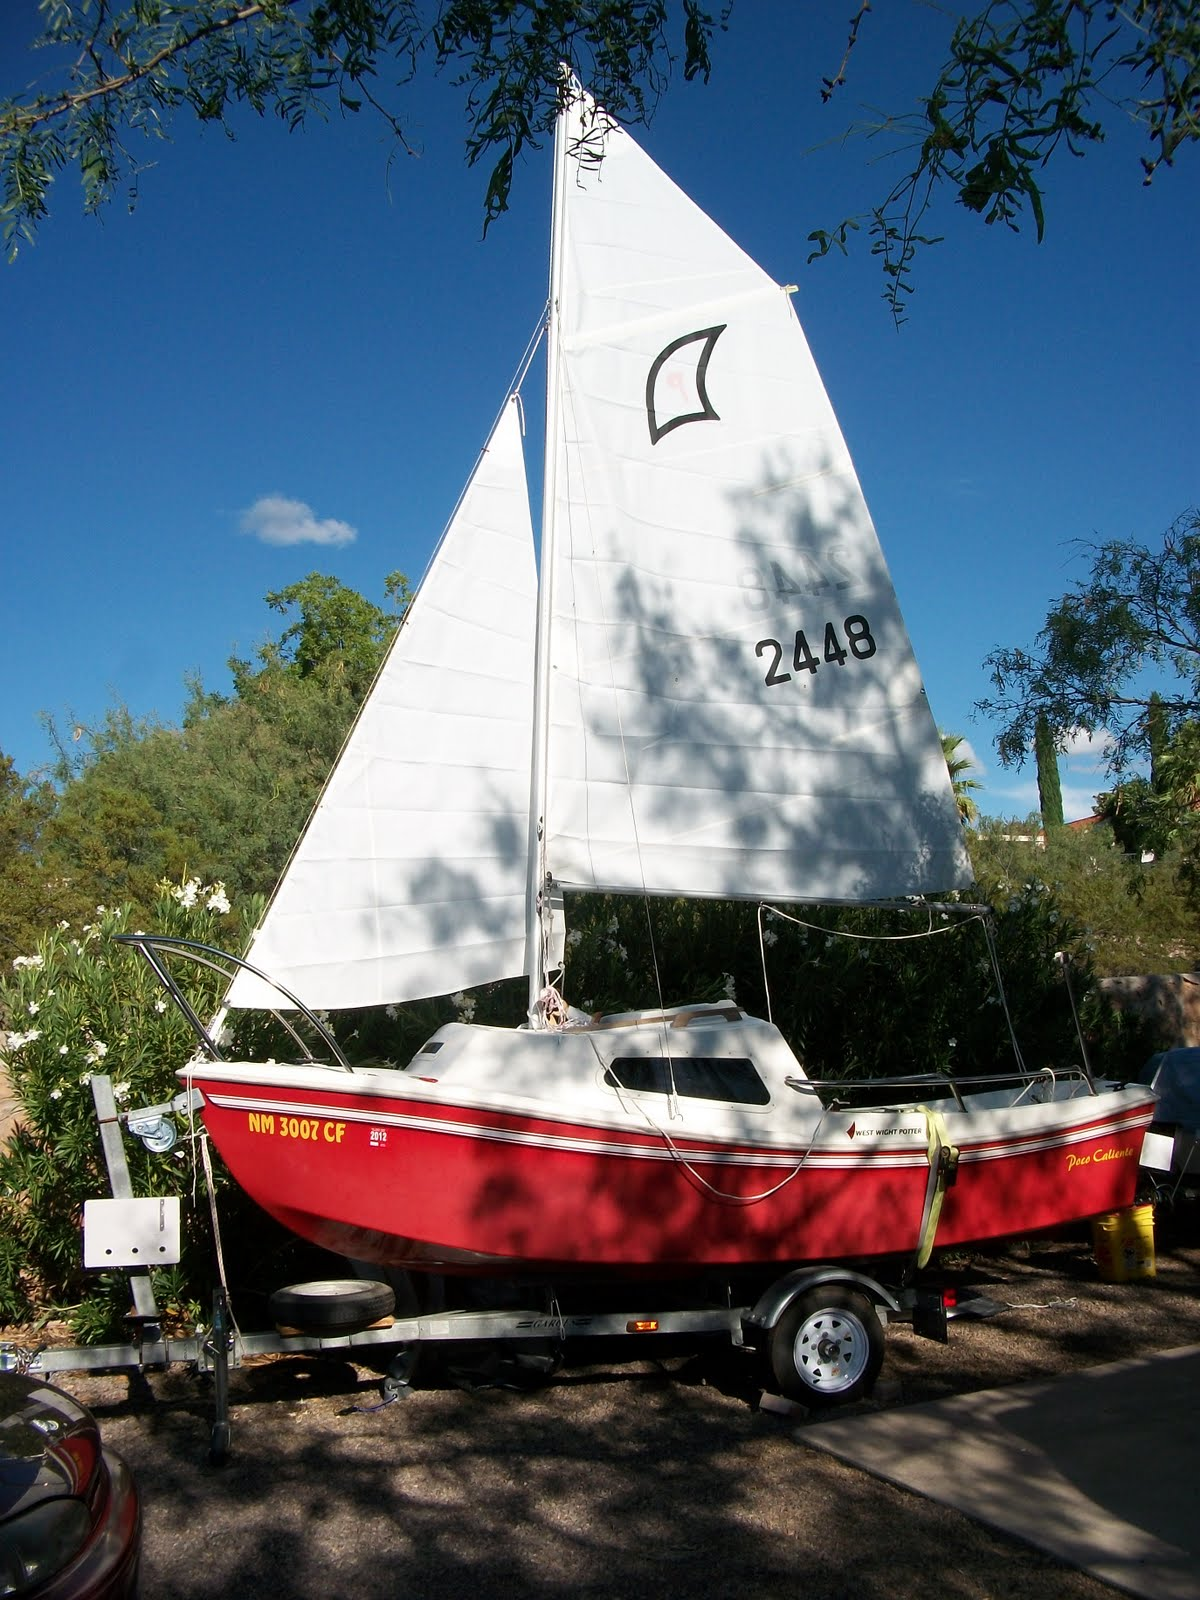 The Potter Is A Compact Mini Cruiser If You Wish To Use Her So But In Our Case Shes Just Comfortable Cozy Stable Easy Handle Day Sailer